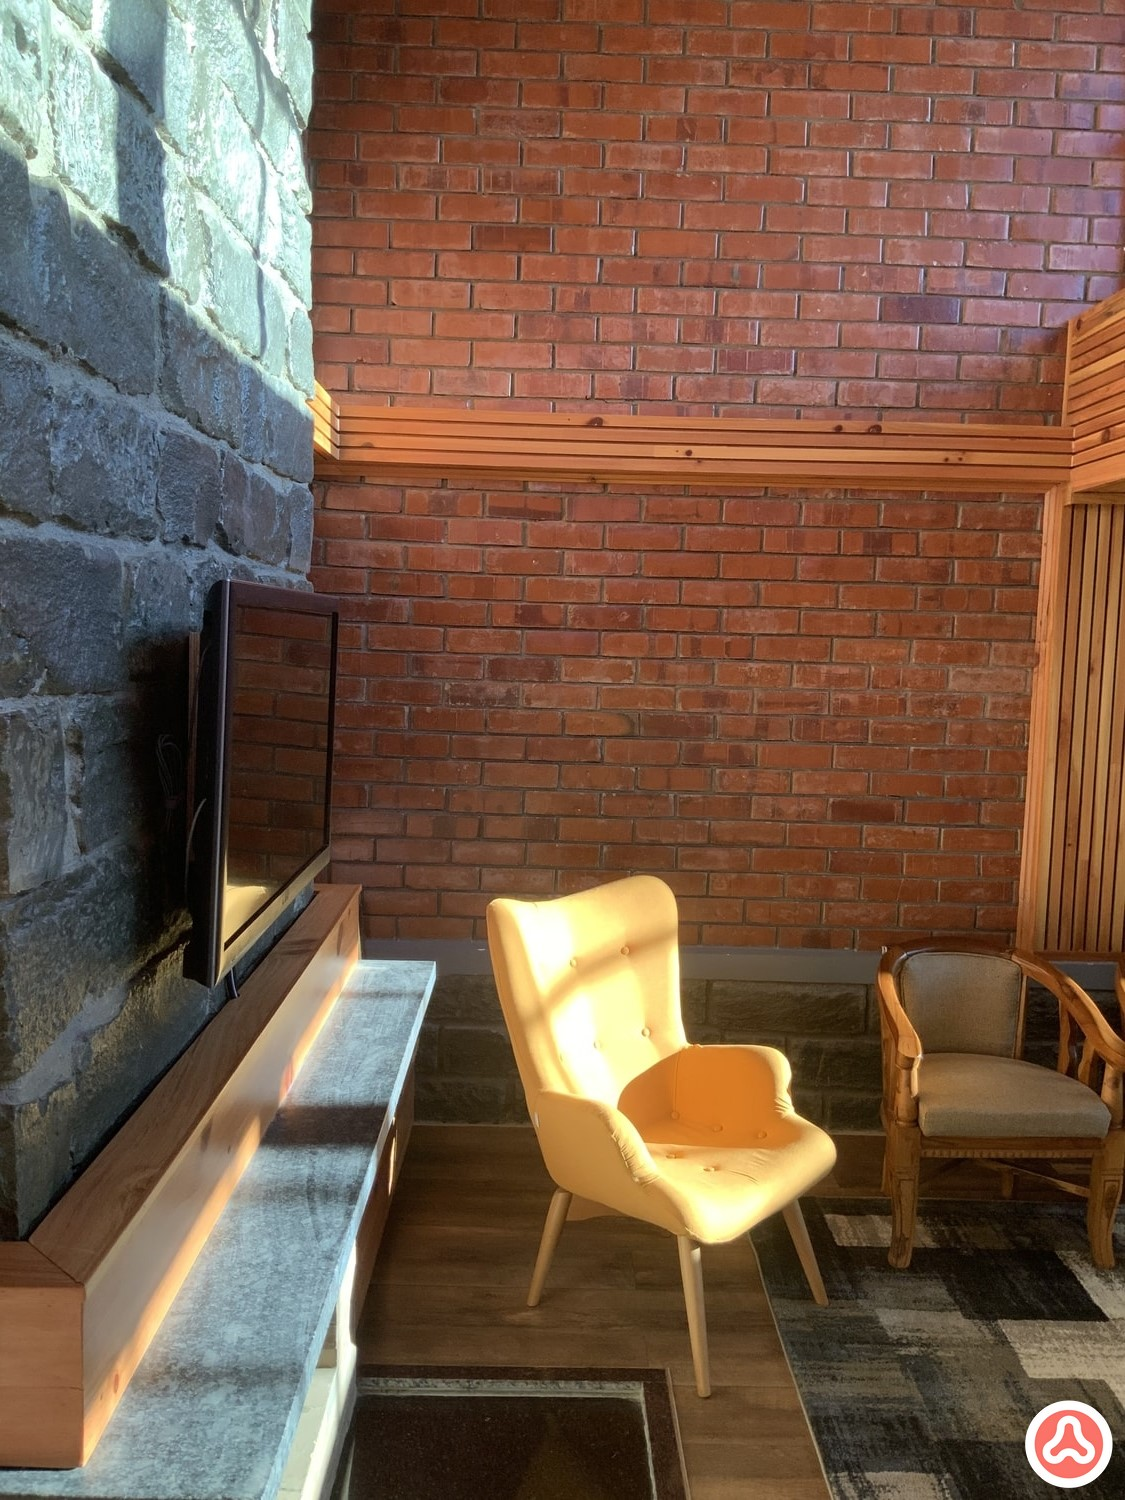 Fire place with a chair and tv unit design